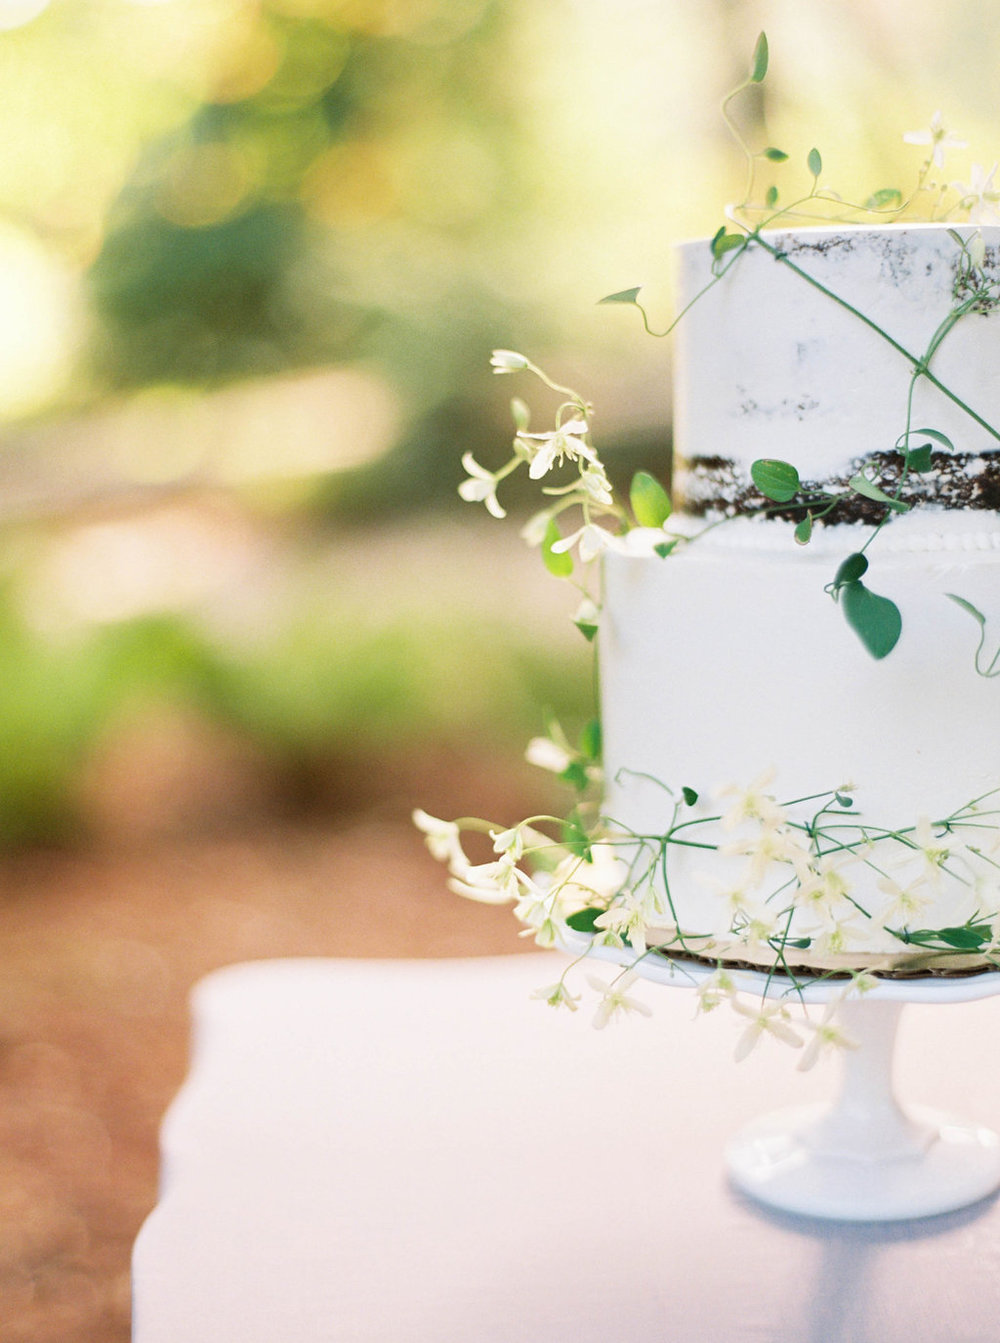 Wedding Wise, Seattle Wedding Planner | 2017 Pantone Color of the Year, Greenery | Sarah Carpenter Photography | Nearly naked cake with vines